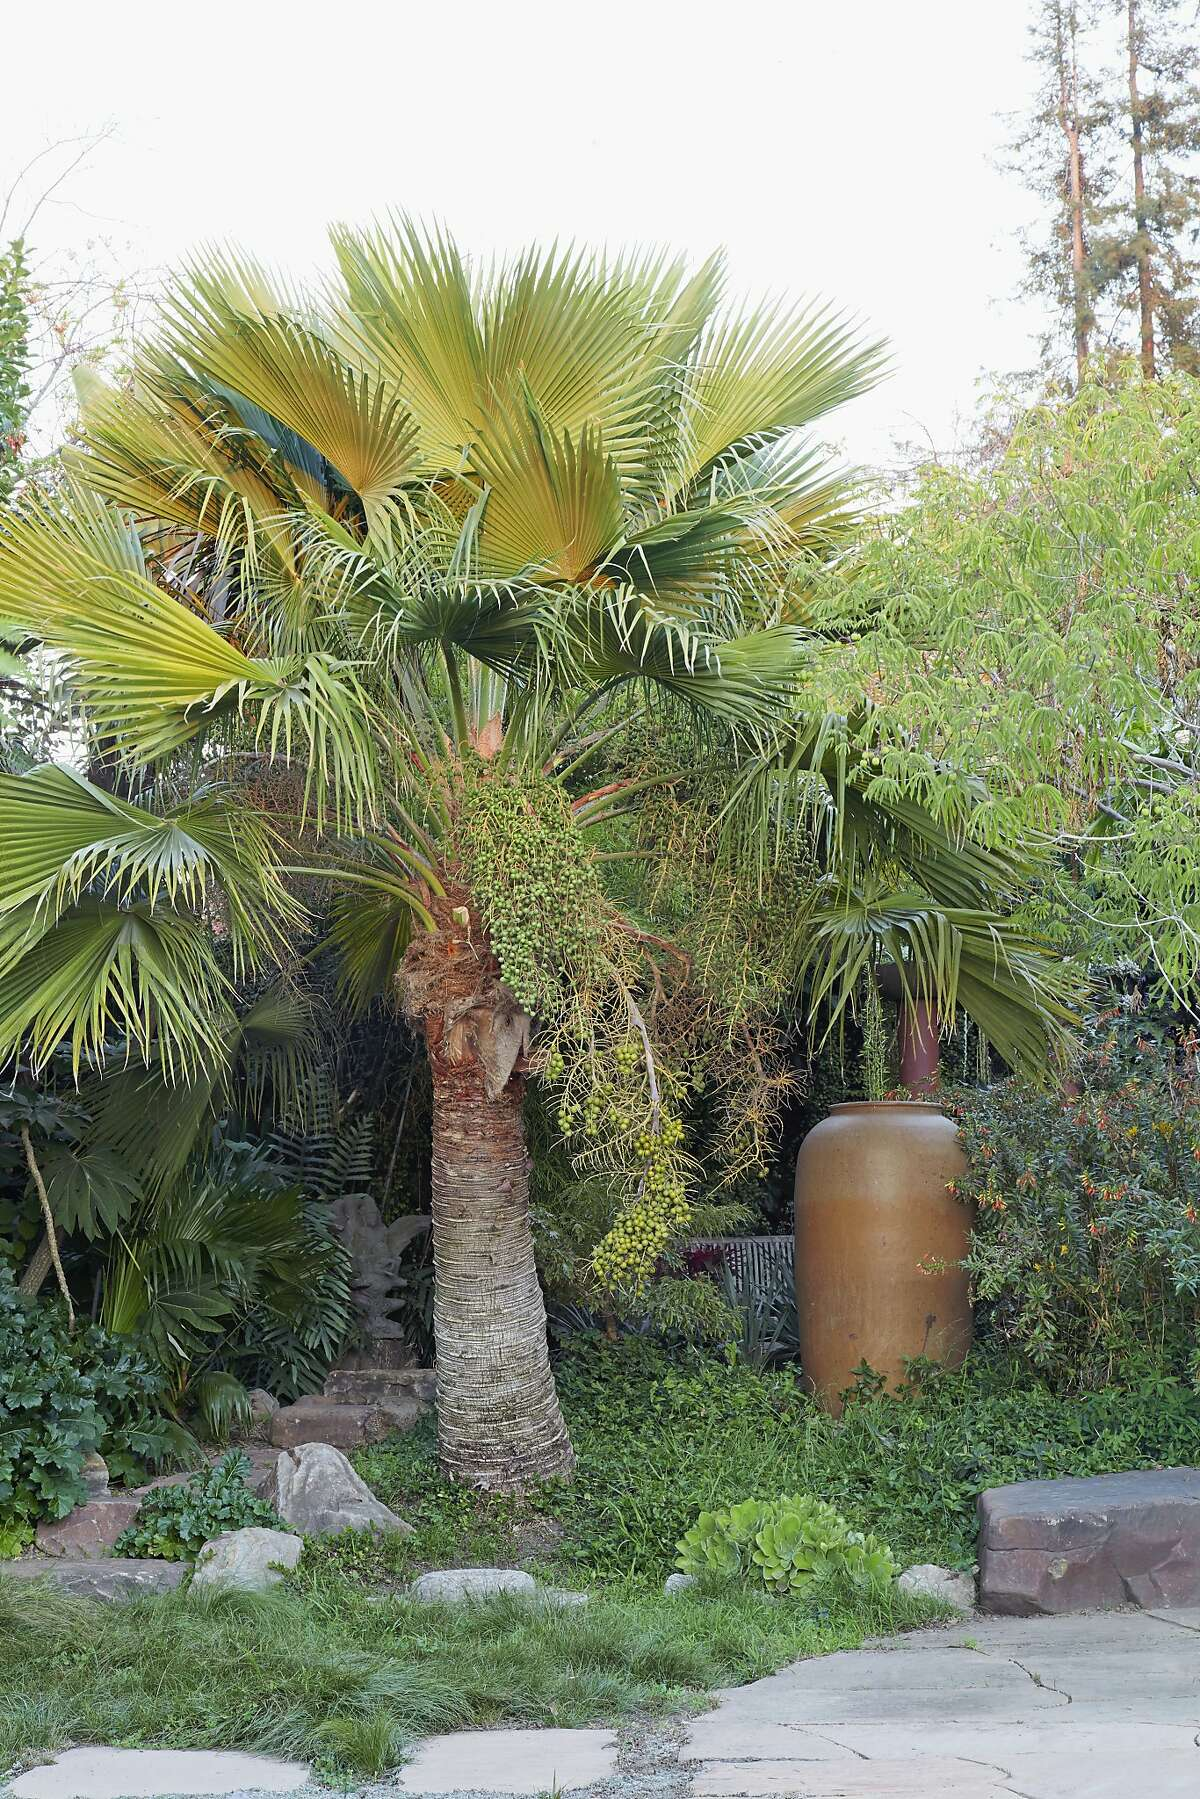 A Guadalupe palm (Butia edulis) forms a fine accent in an Oakland garden.